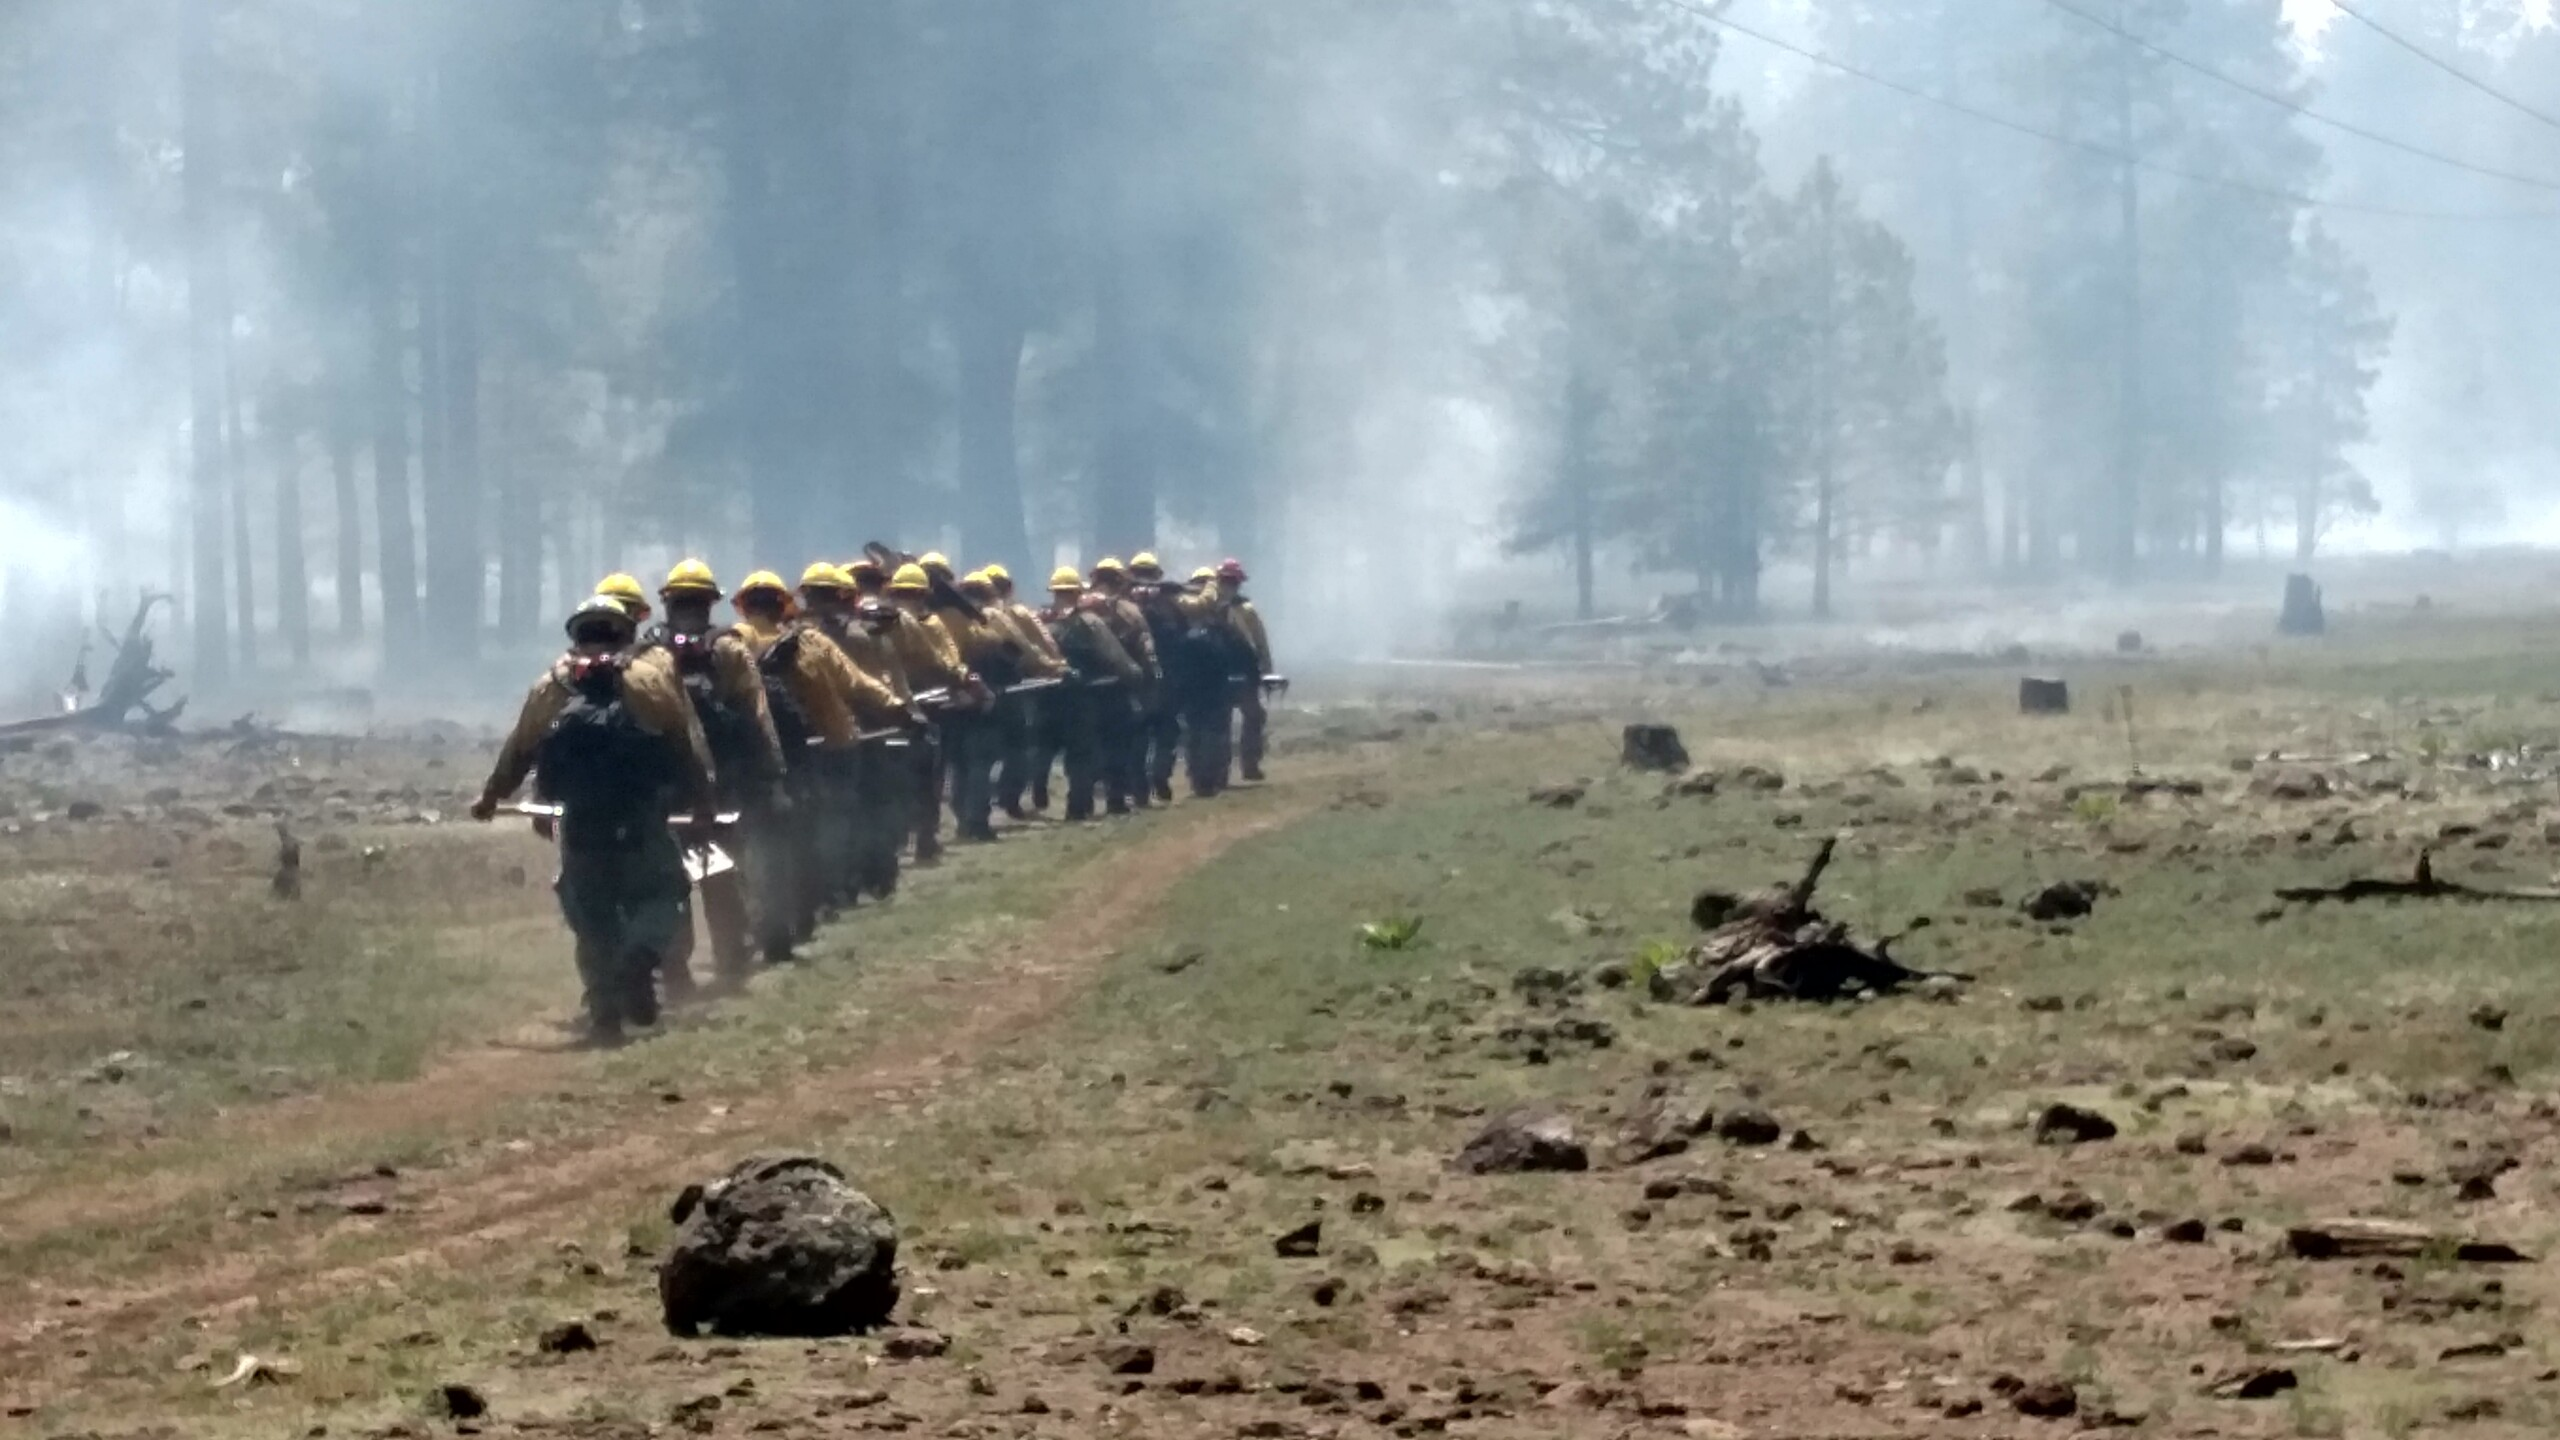 Inmates heading to battle wildfires in this July 2019 photo.